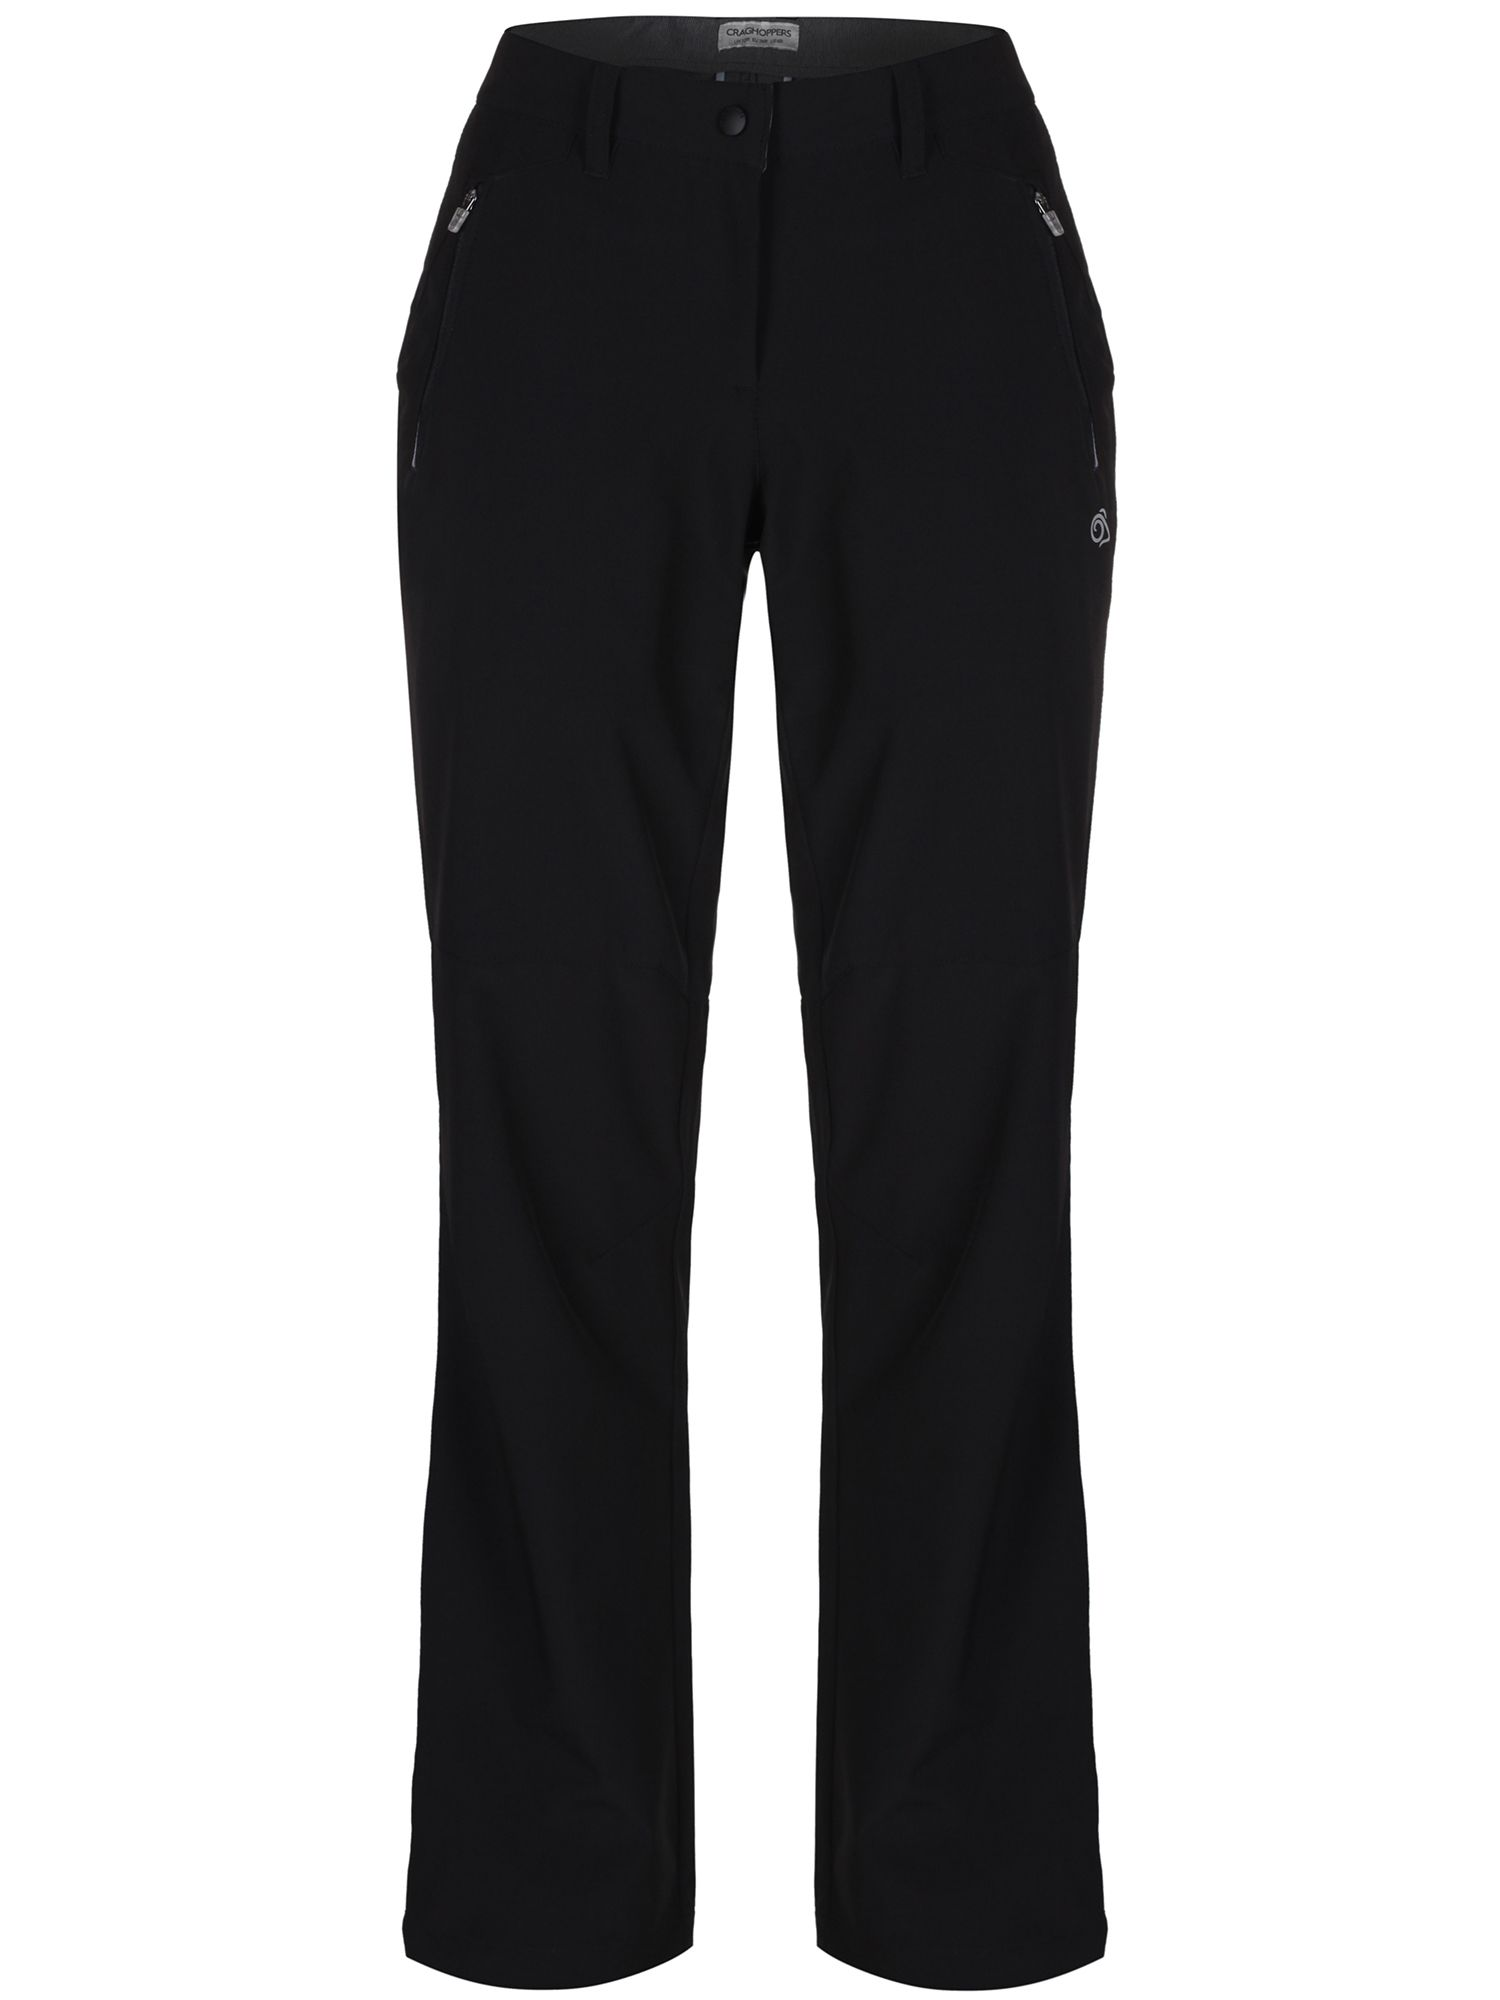 Craghoppers Pro Lite SoftShell Trousers, Black